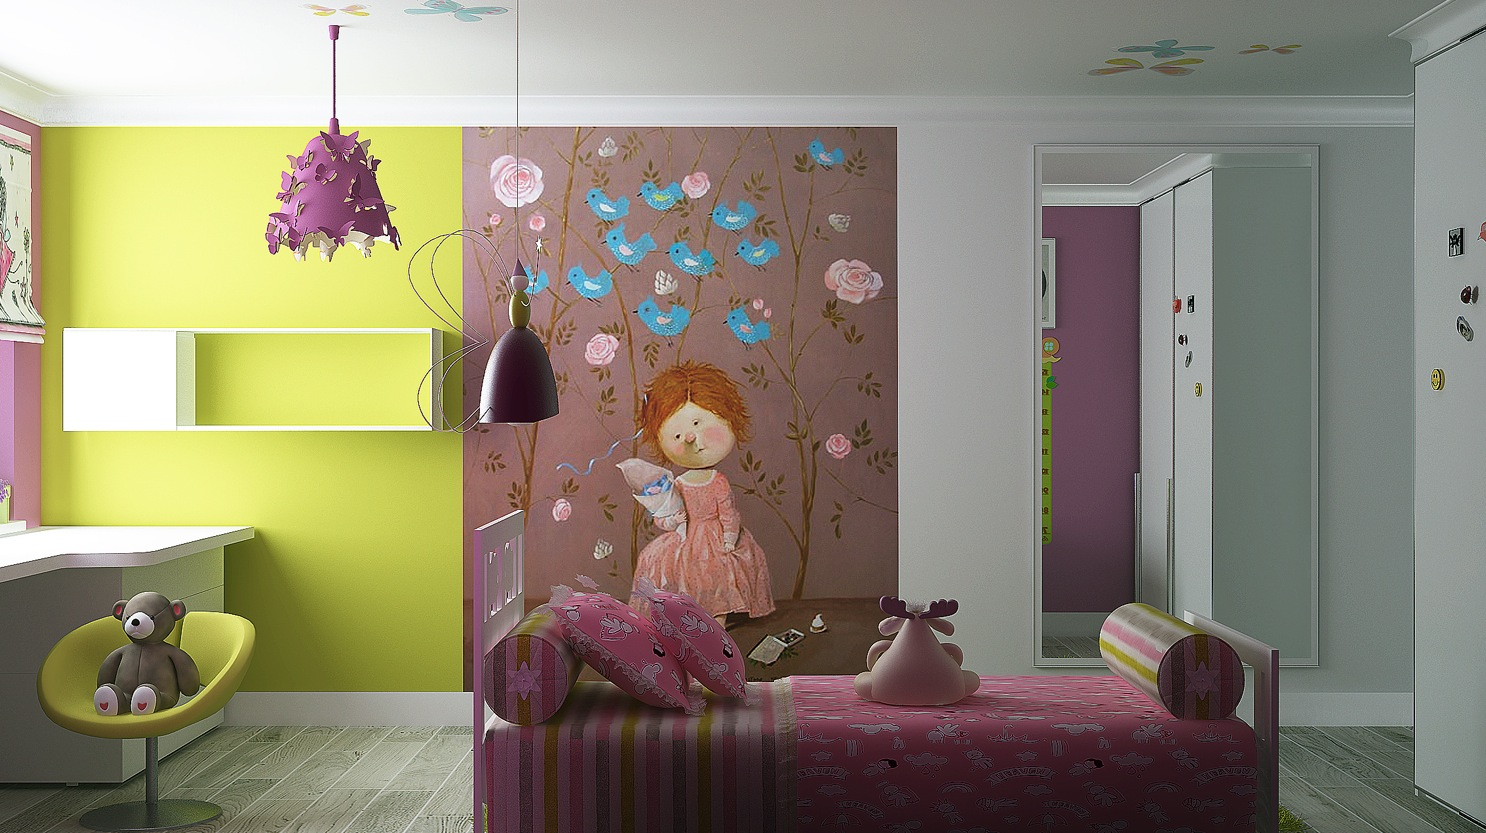 Nice room colors for girls - Nice Room Colors For Girls 19